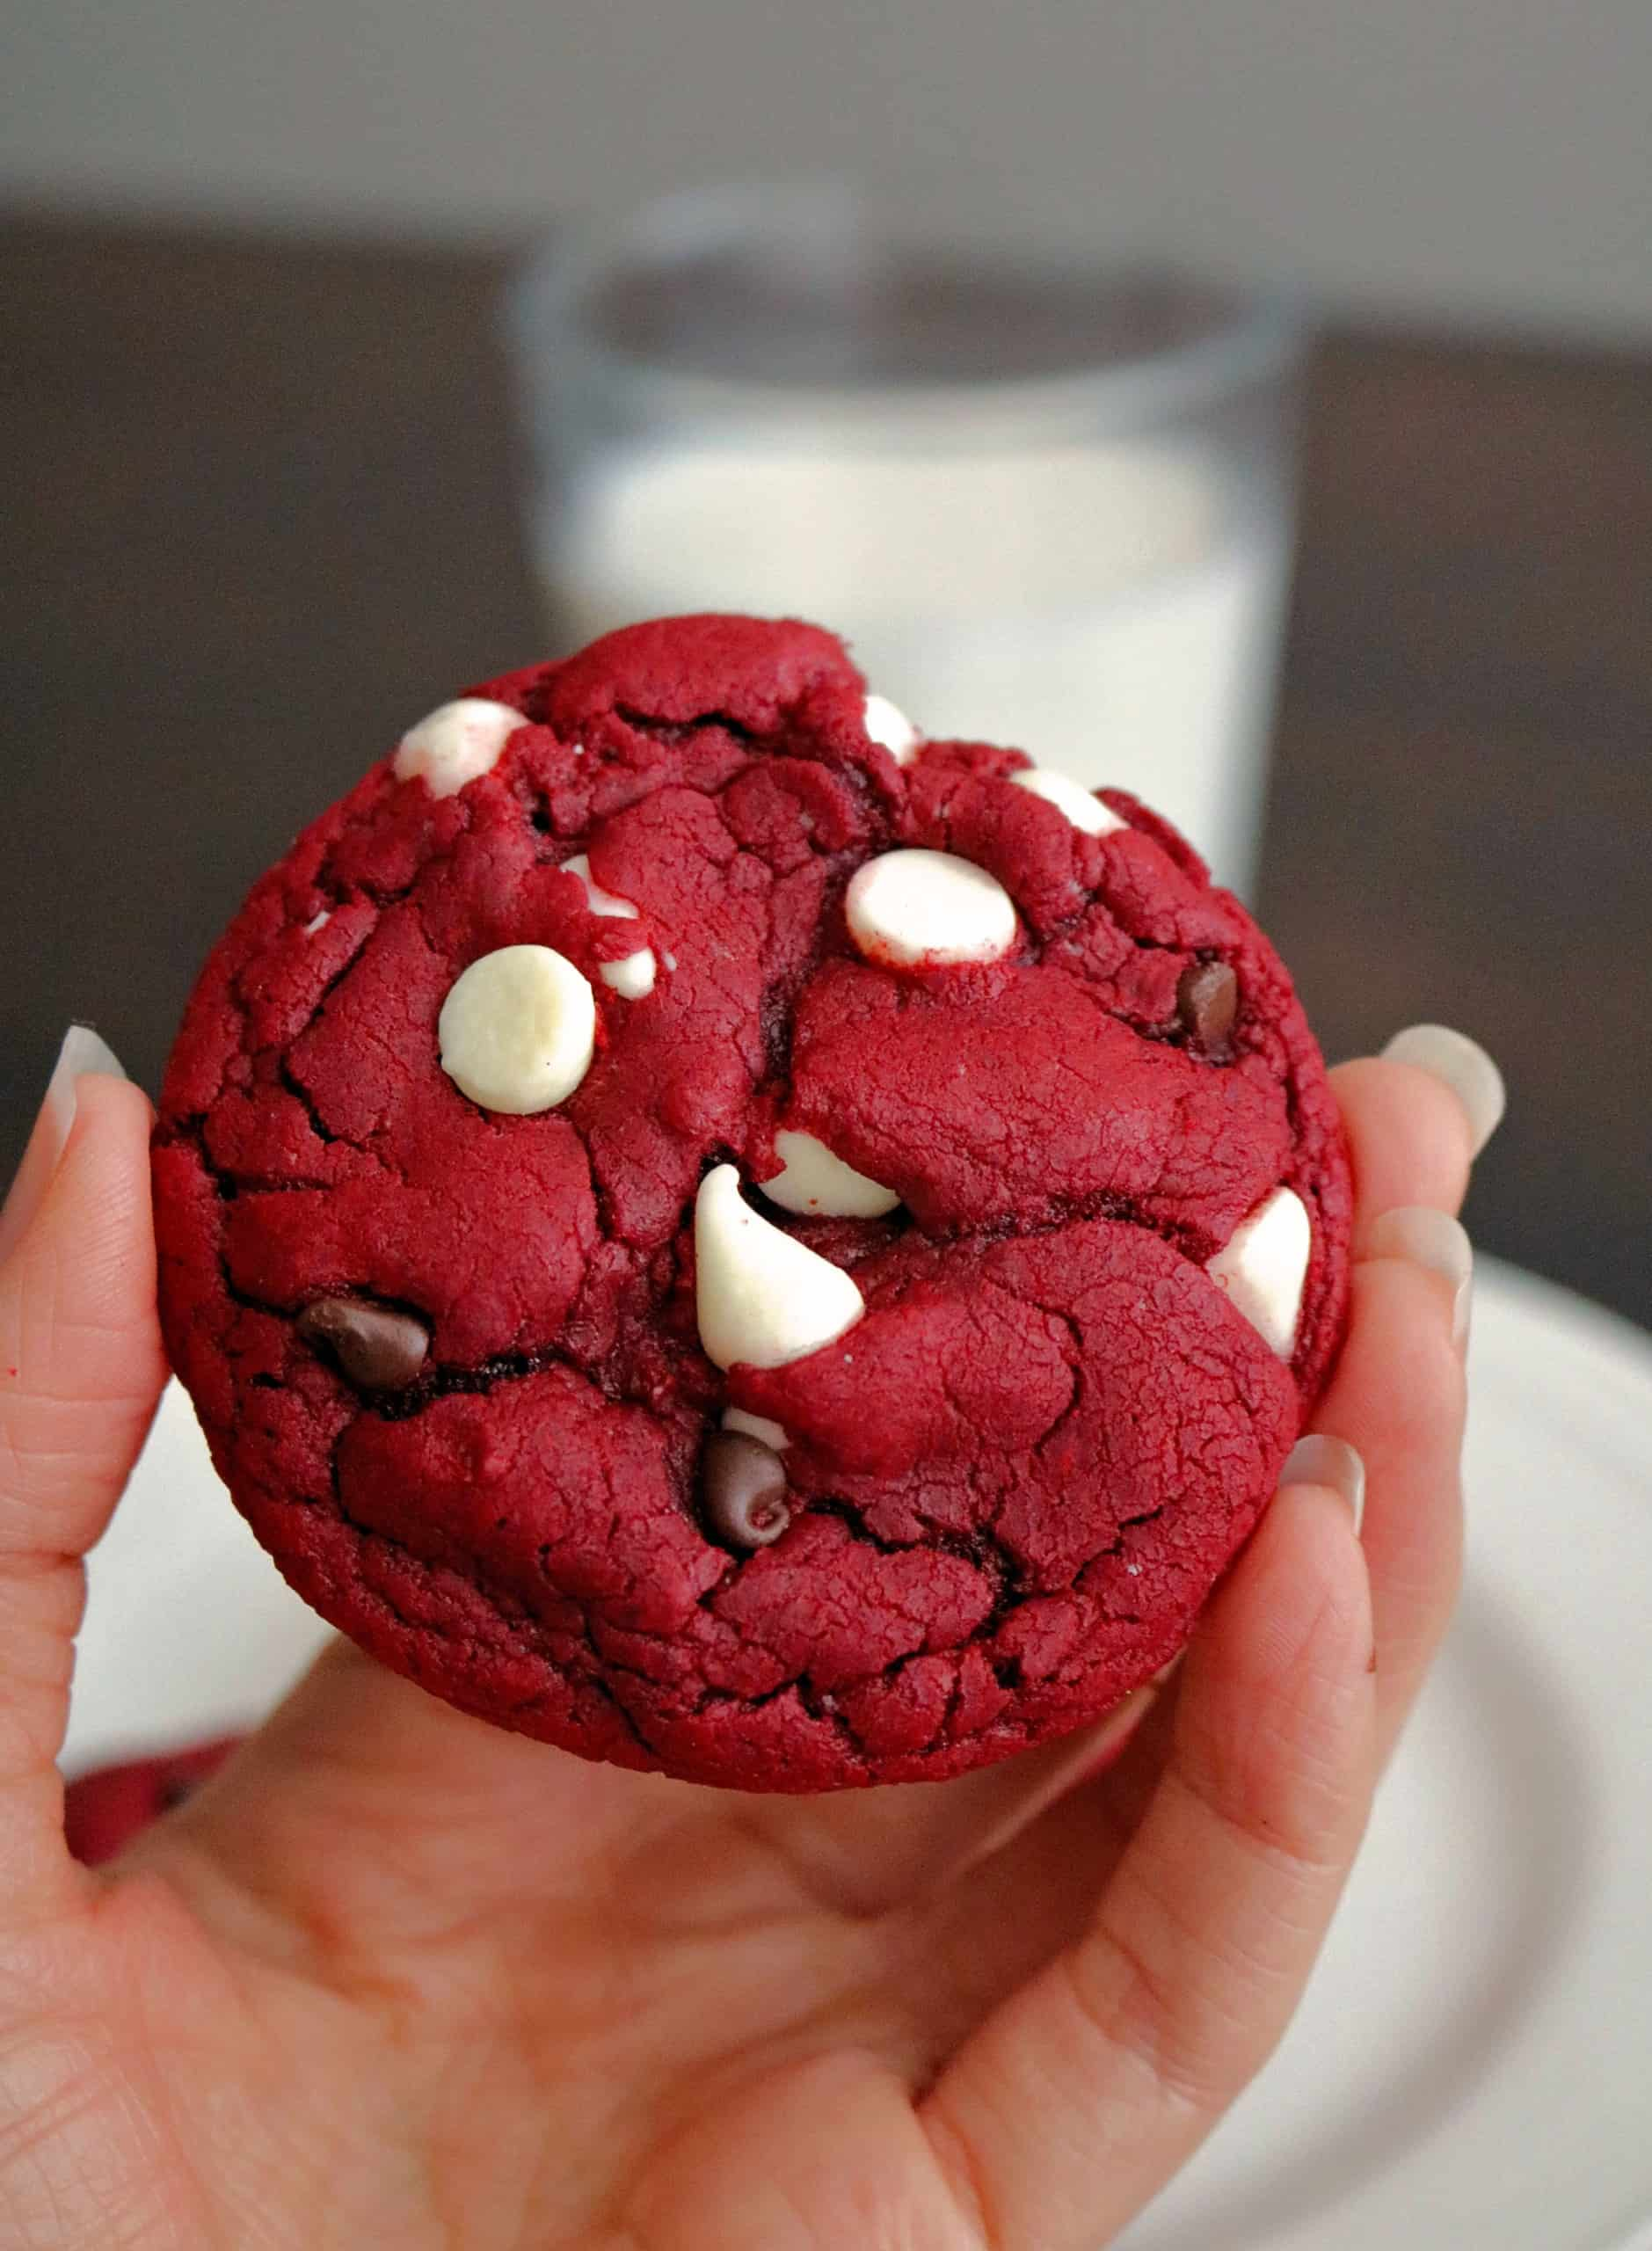 With just 5 ingredients, these soft, chewy, and delicious Red Velvet Cake Mix Cookies are so easy to make. These best ever red velvet cookies are made from a boxed cake mix, white chocolate chips, and miniature semi sweet chocolate chips, and are perfect for Christmas, Valentine's Day, or anytime you're craving red velvet cake! #redvelvetcookies #cookies #cakemixcookies #christmascookies #valentinescookies #redvelvet